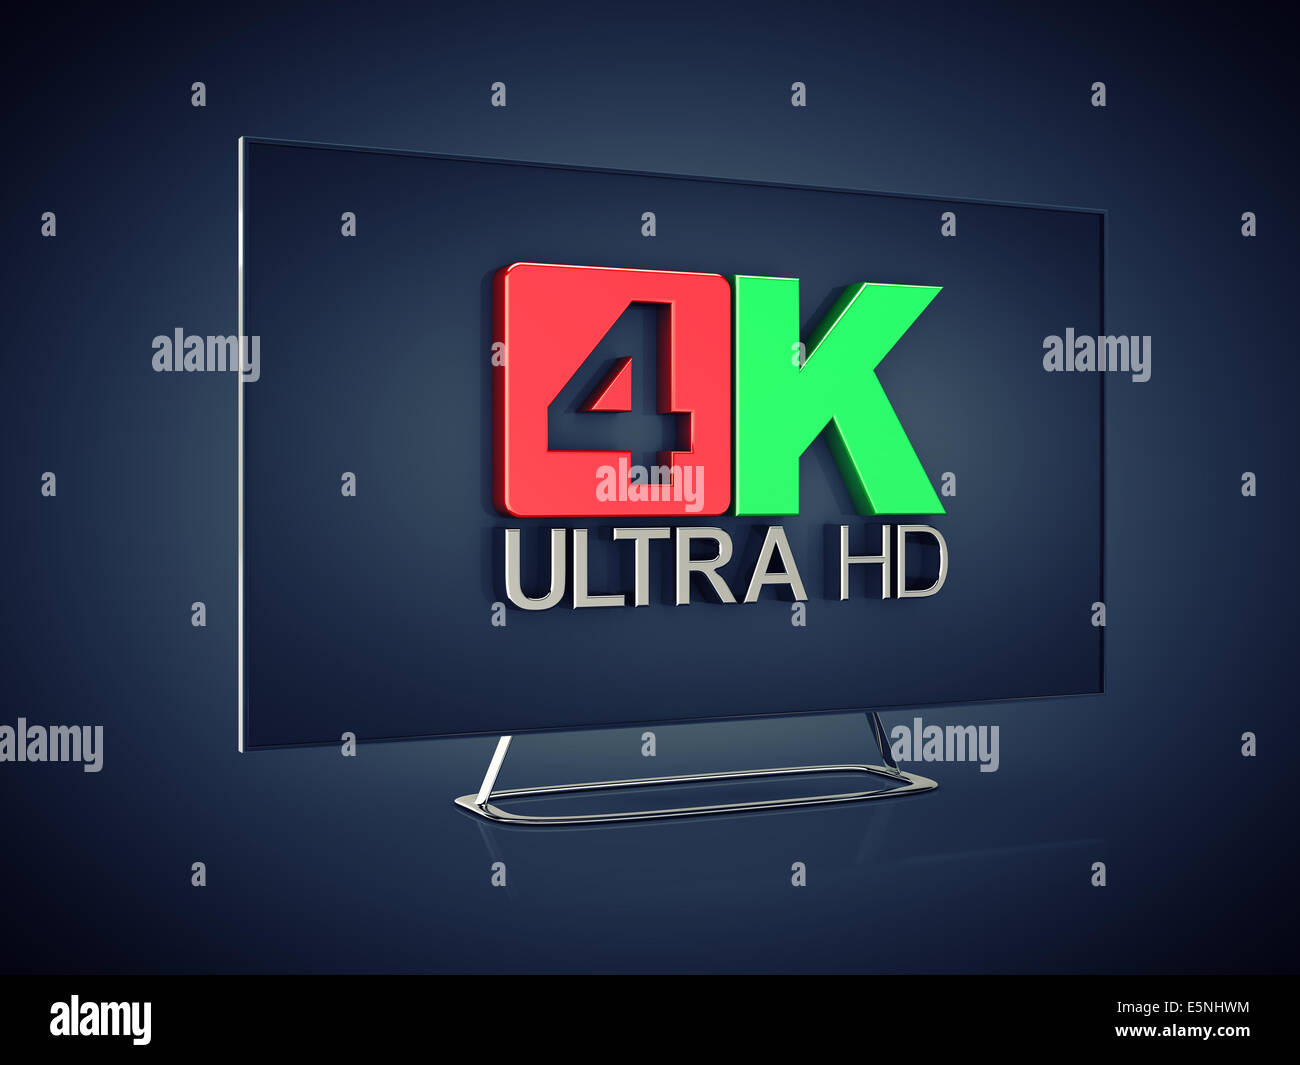 4k Ultra Hd Schermo Tv Su Sfondo Scuro Ultra High Definition